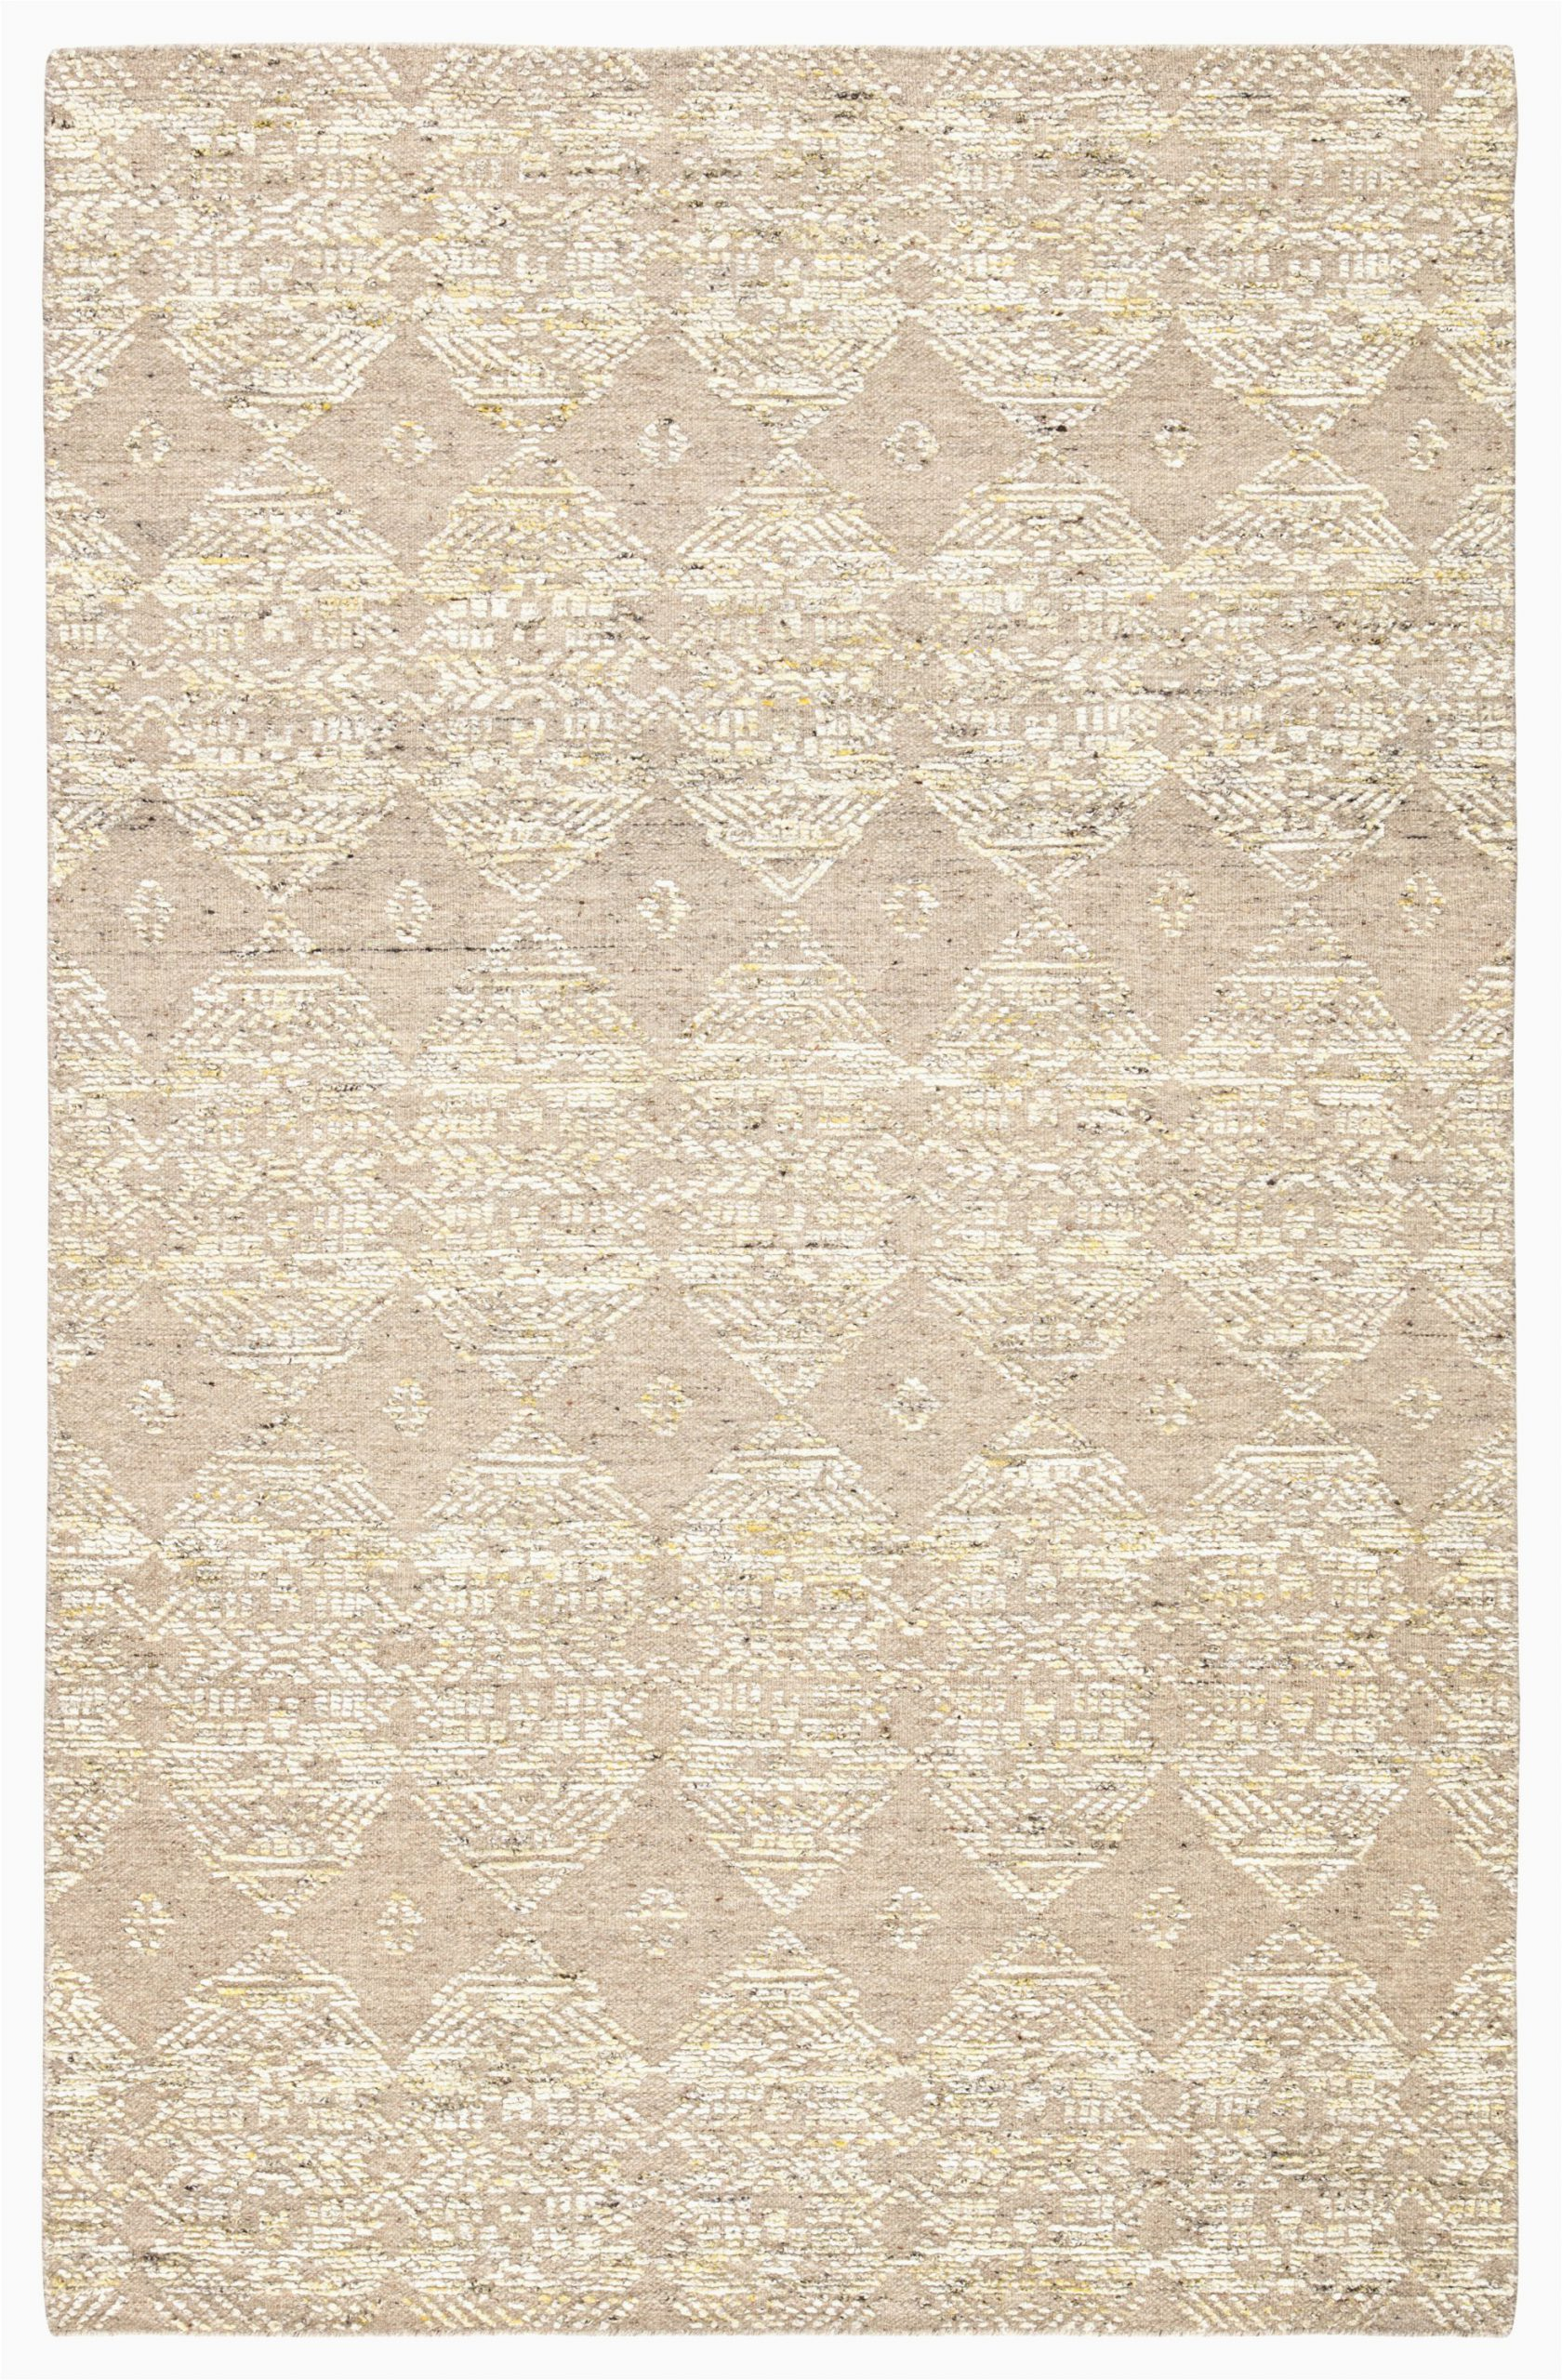 brk02 dentelle hand knotted geometric beige gold area rug by jaipur living